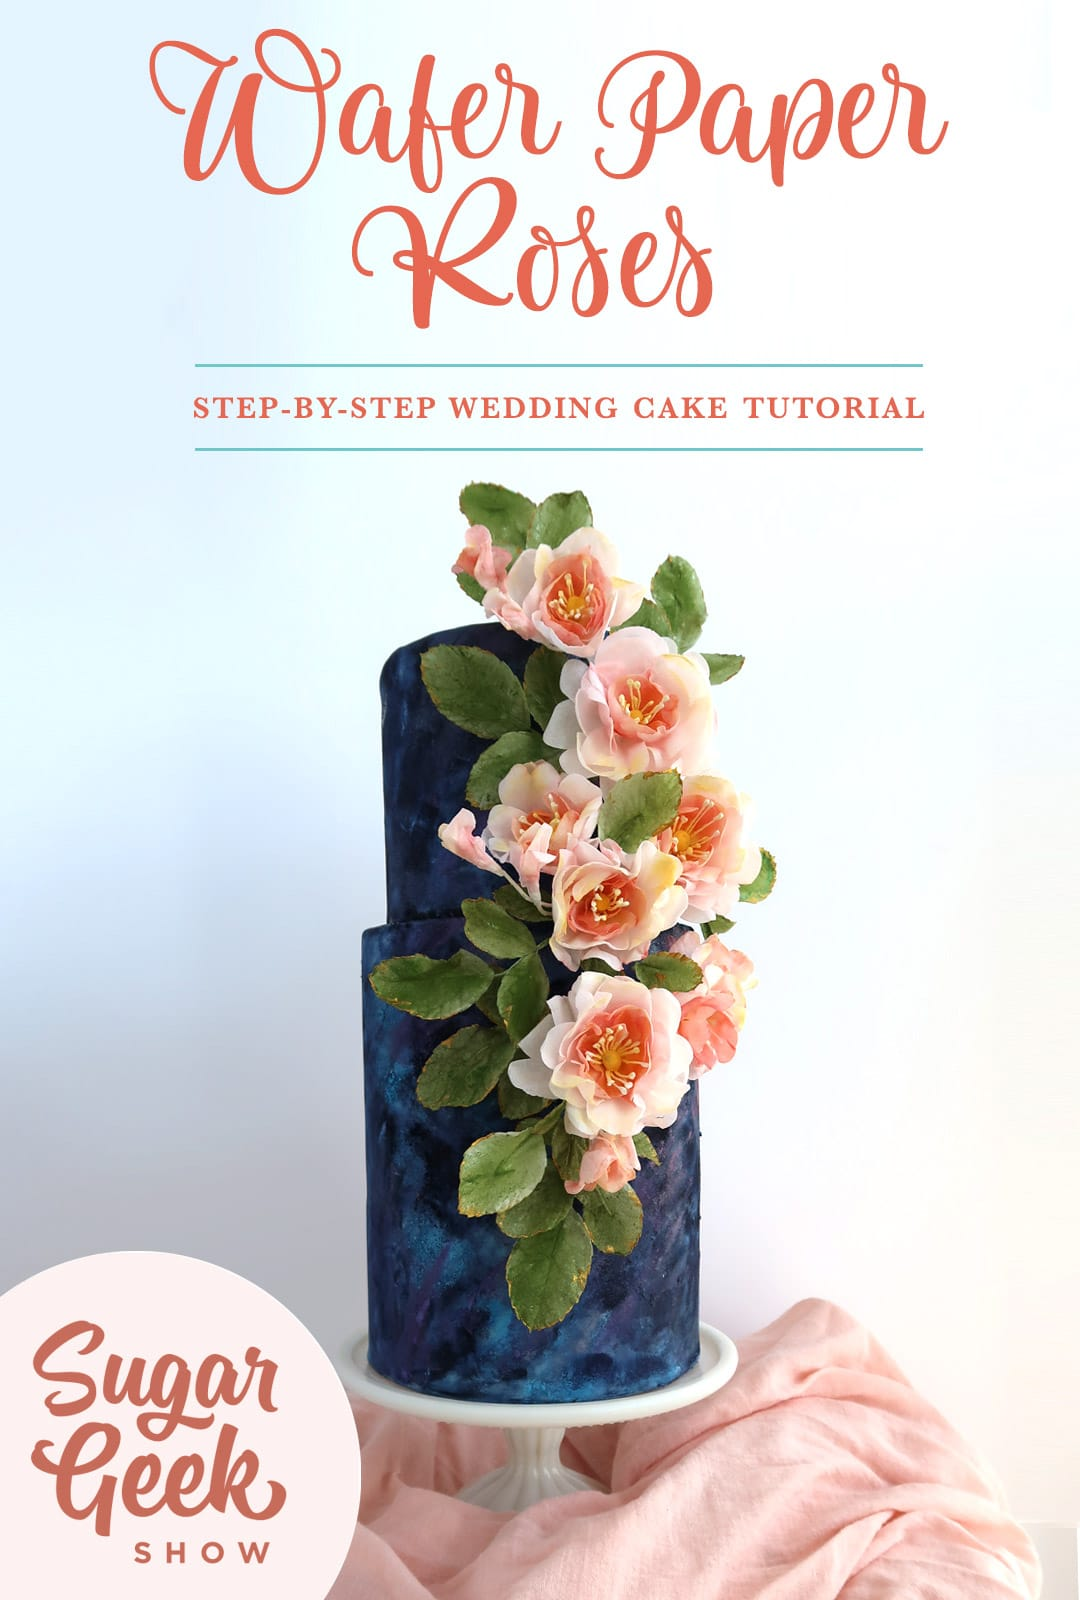 Wafer Paper Roses on a textured wedding cake